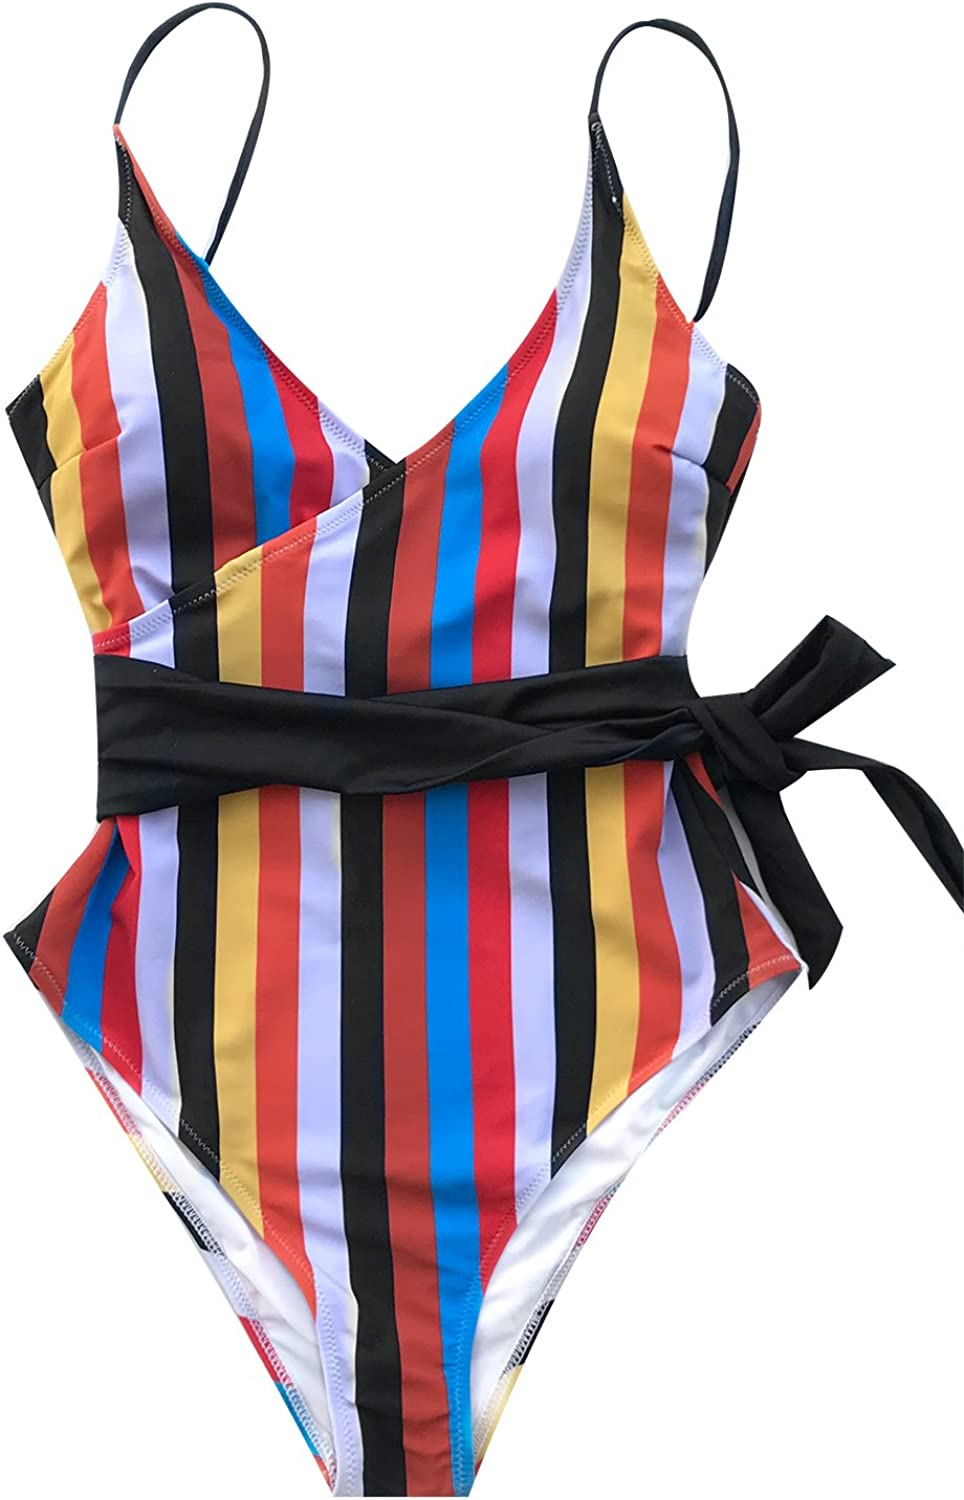 CUPSHE Women's Tropic of Discusssion Front Mail order cheap One Piec Ranking integrated 1st place Stripe Cross